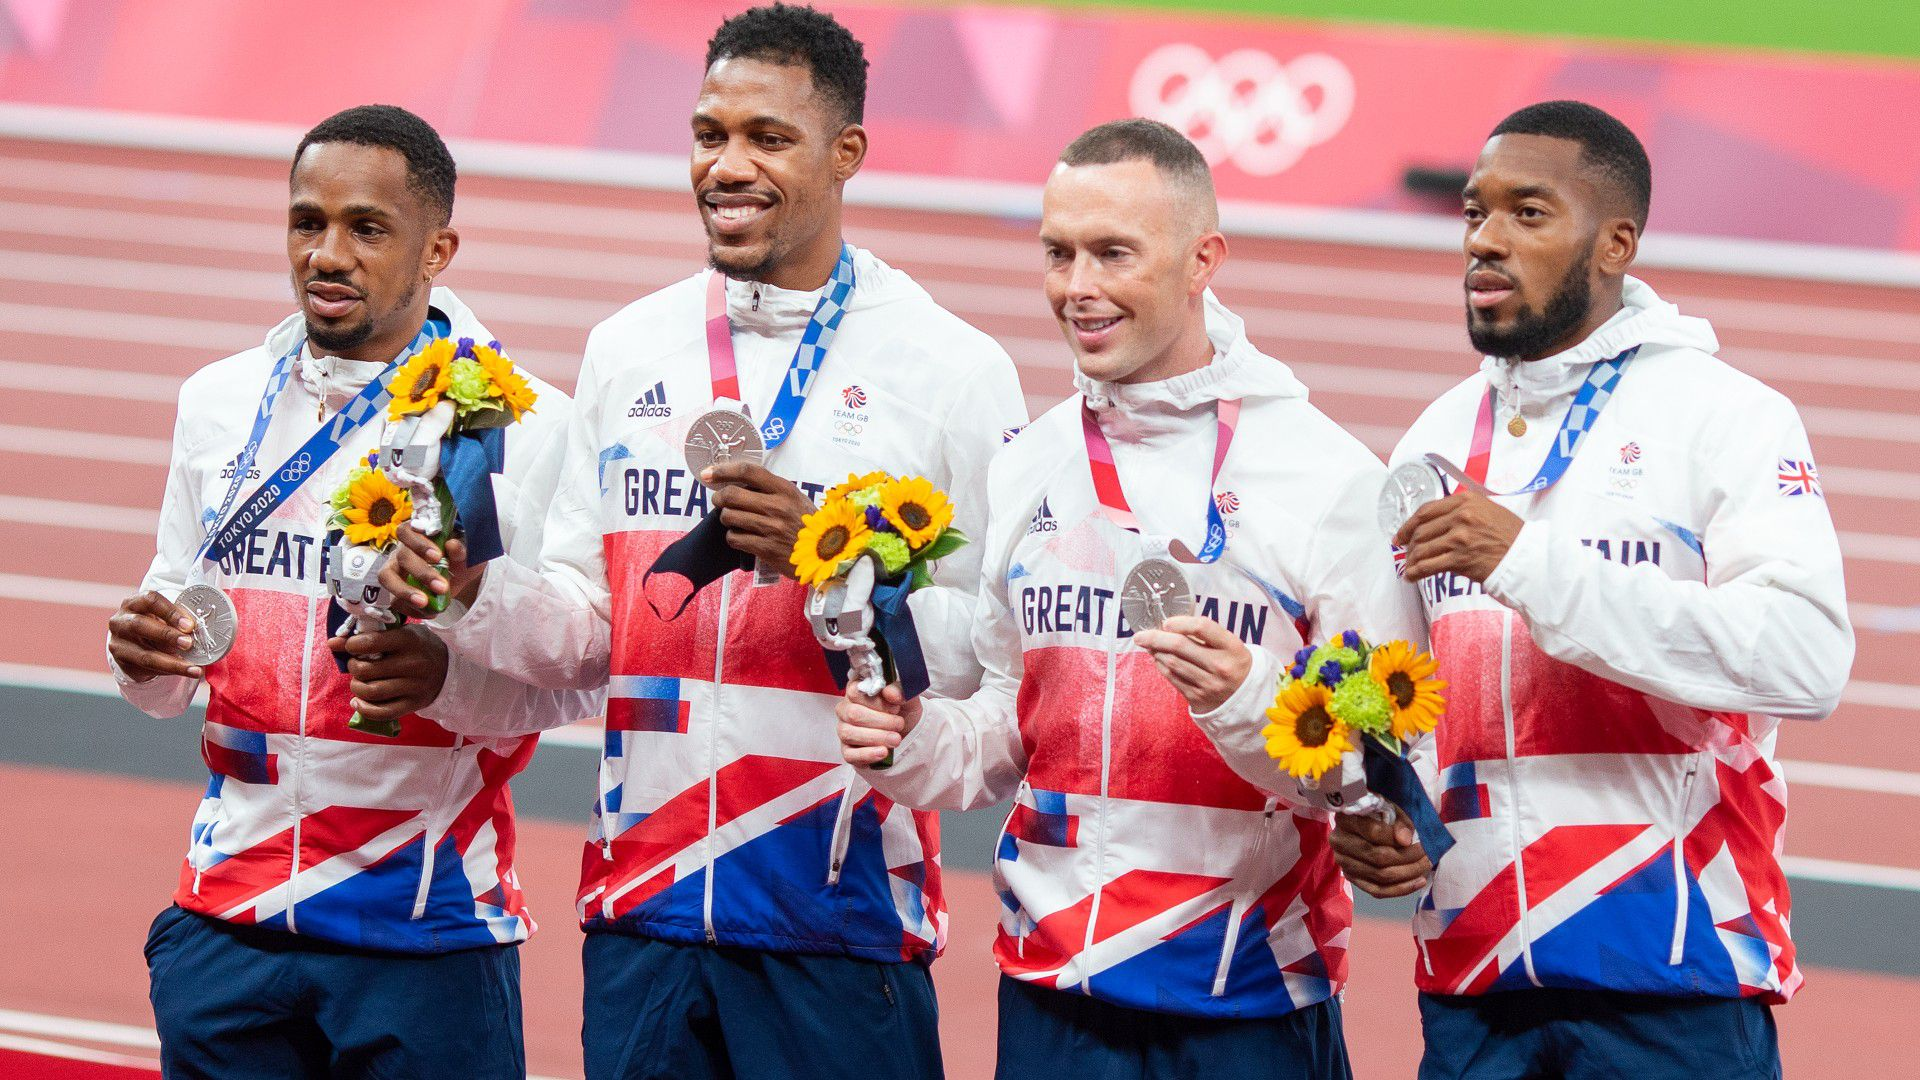 Great Britain Olympic relay team set to lose medals after failed drug test